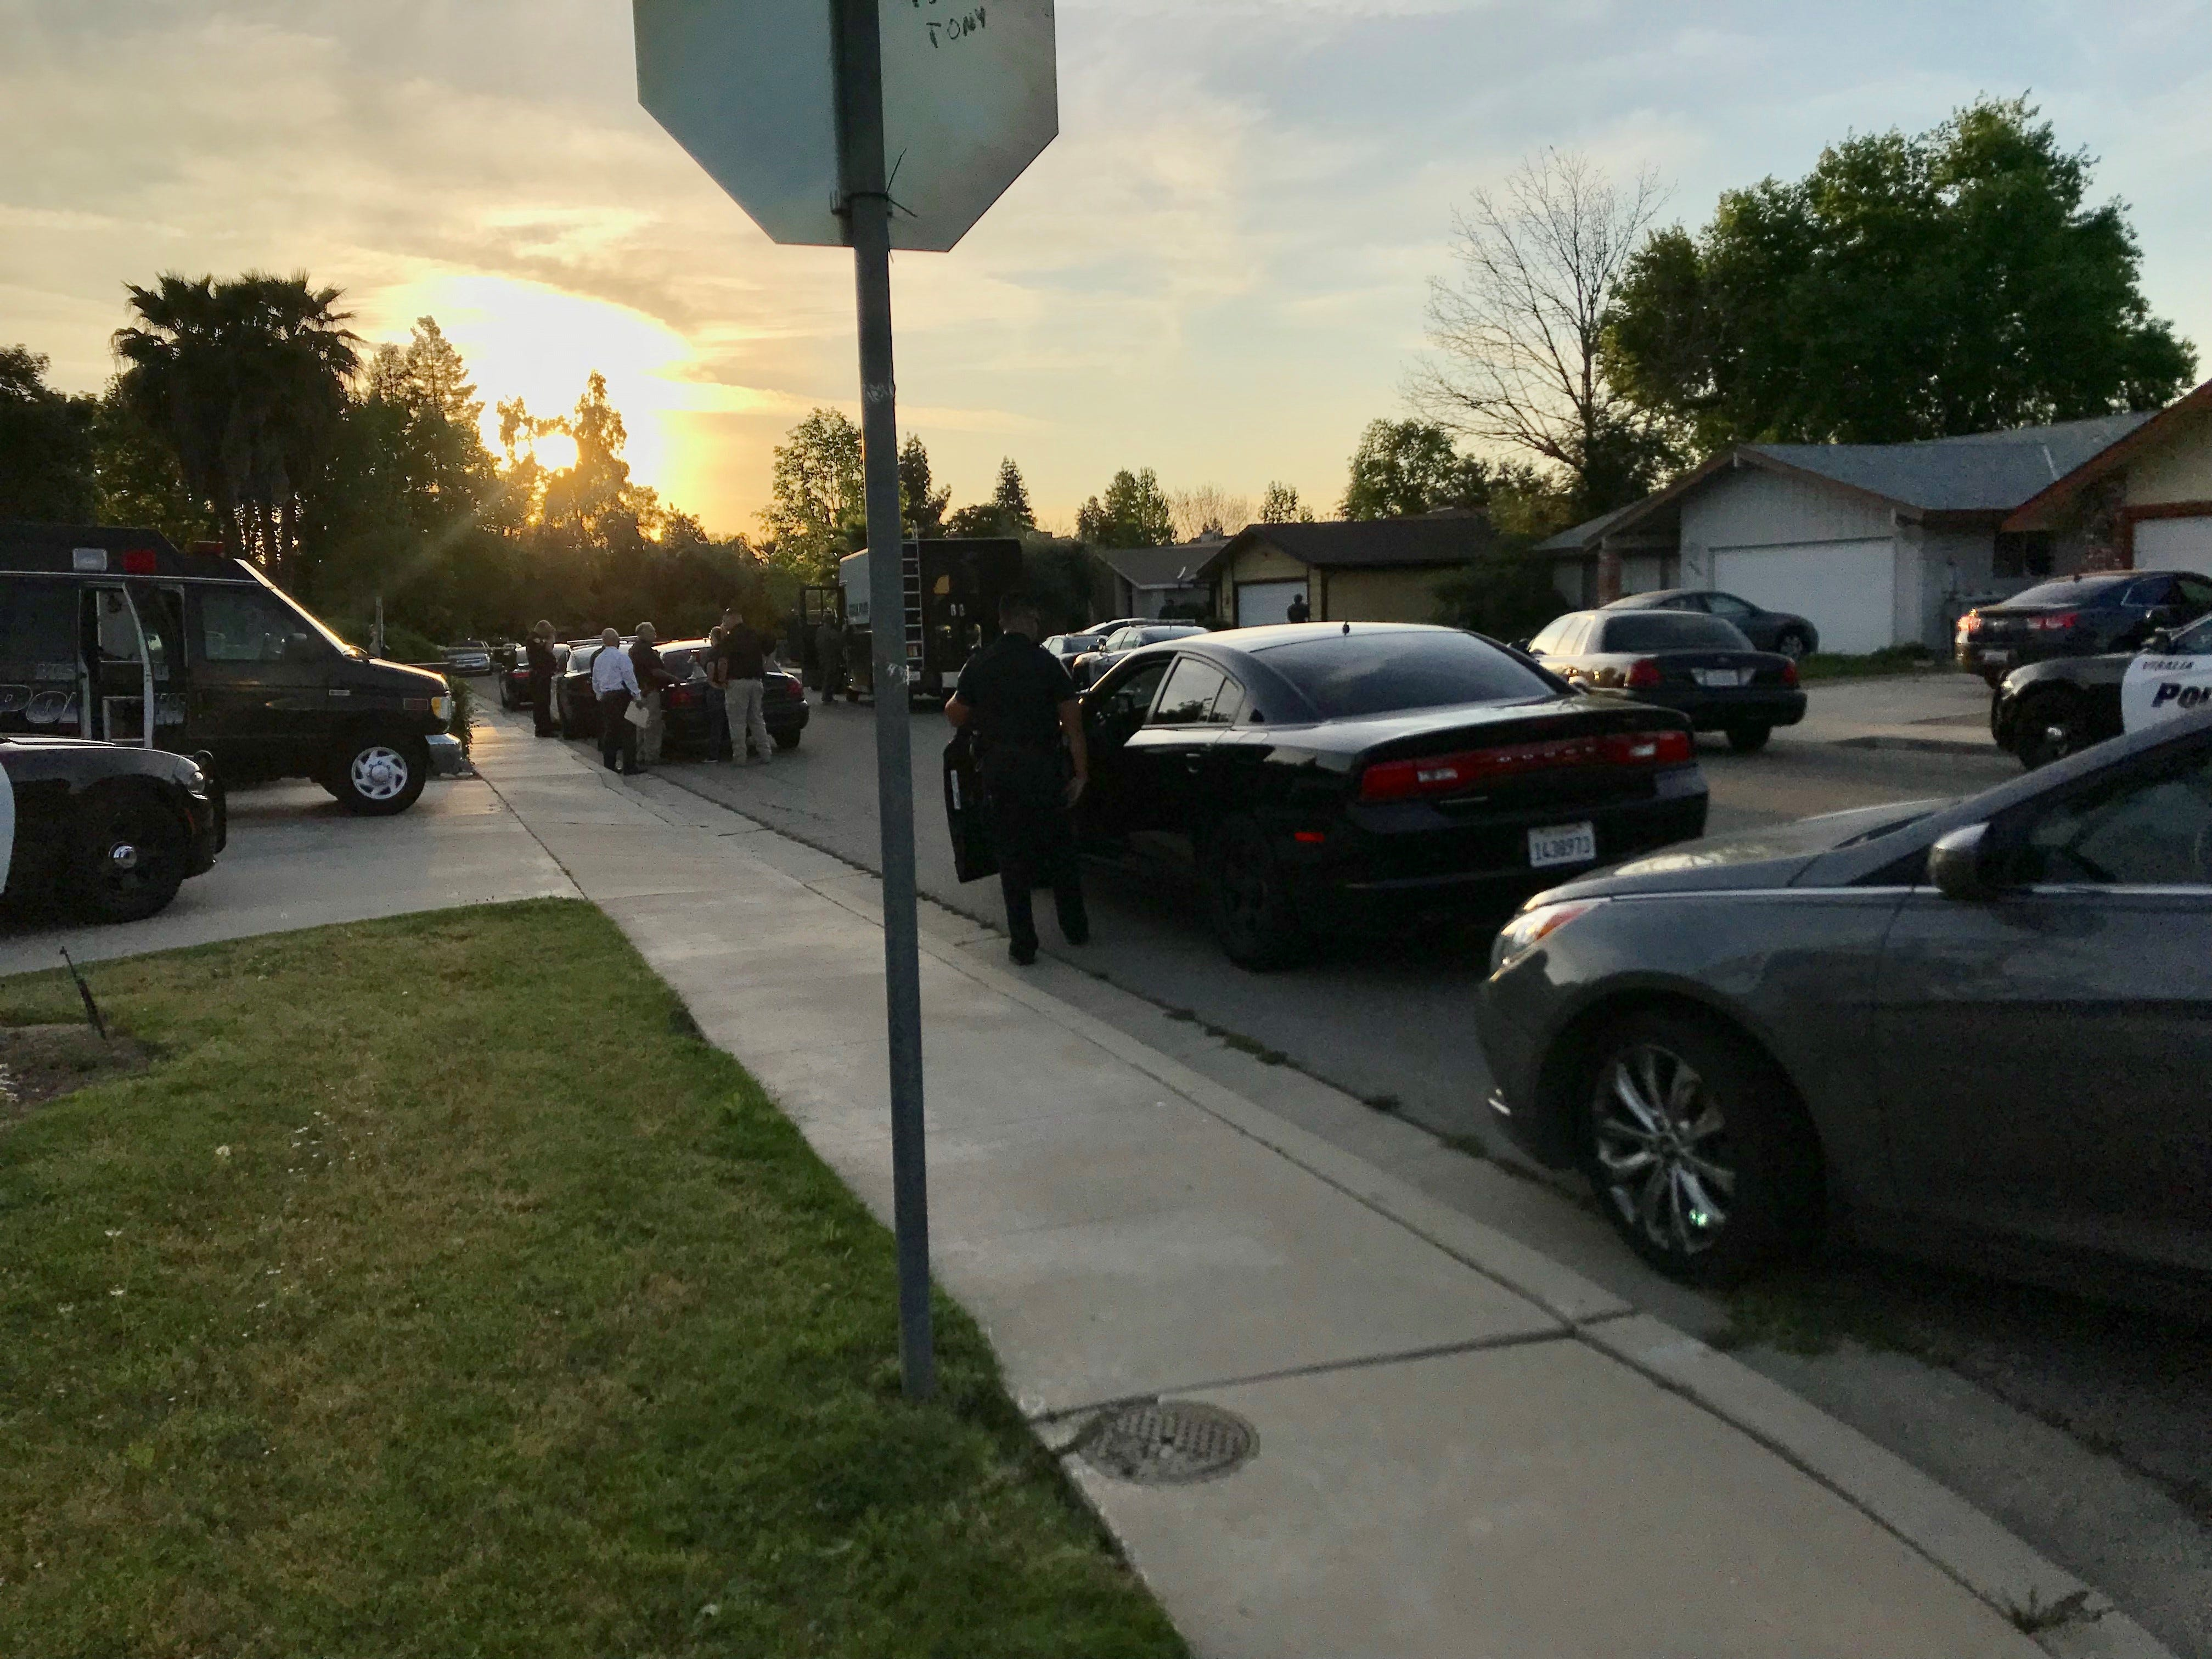 At about 5:30 p.m. Sunday, Visalia Police officers werecalled to a domestic disturbancein the 2000 block of East Hillcrest Drive near Pinkham Street and Walnut Avenue.